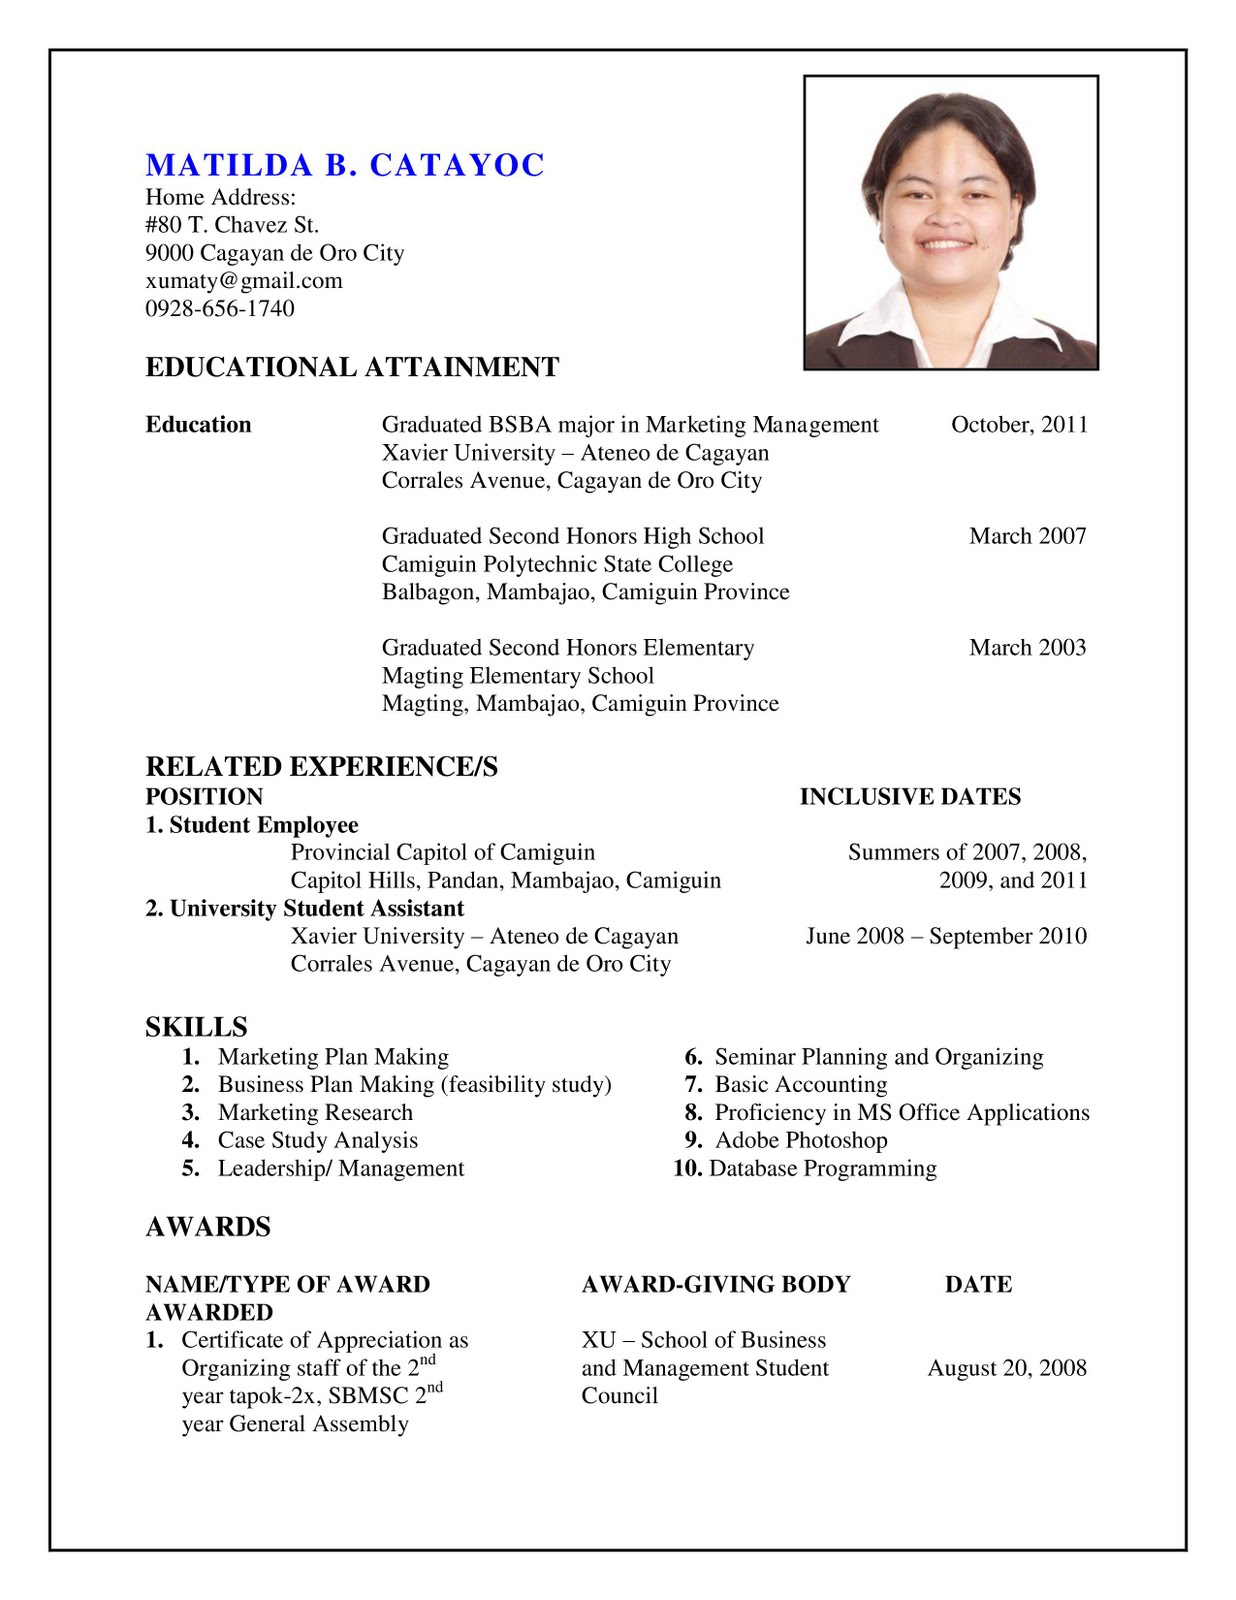 Make Resume Better. how to develop a resume yangoo org. graphics ...